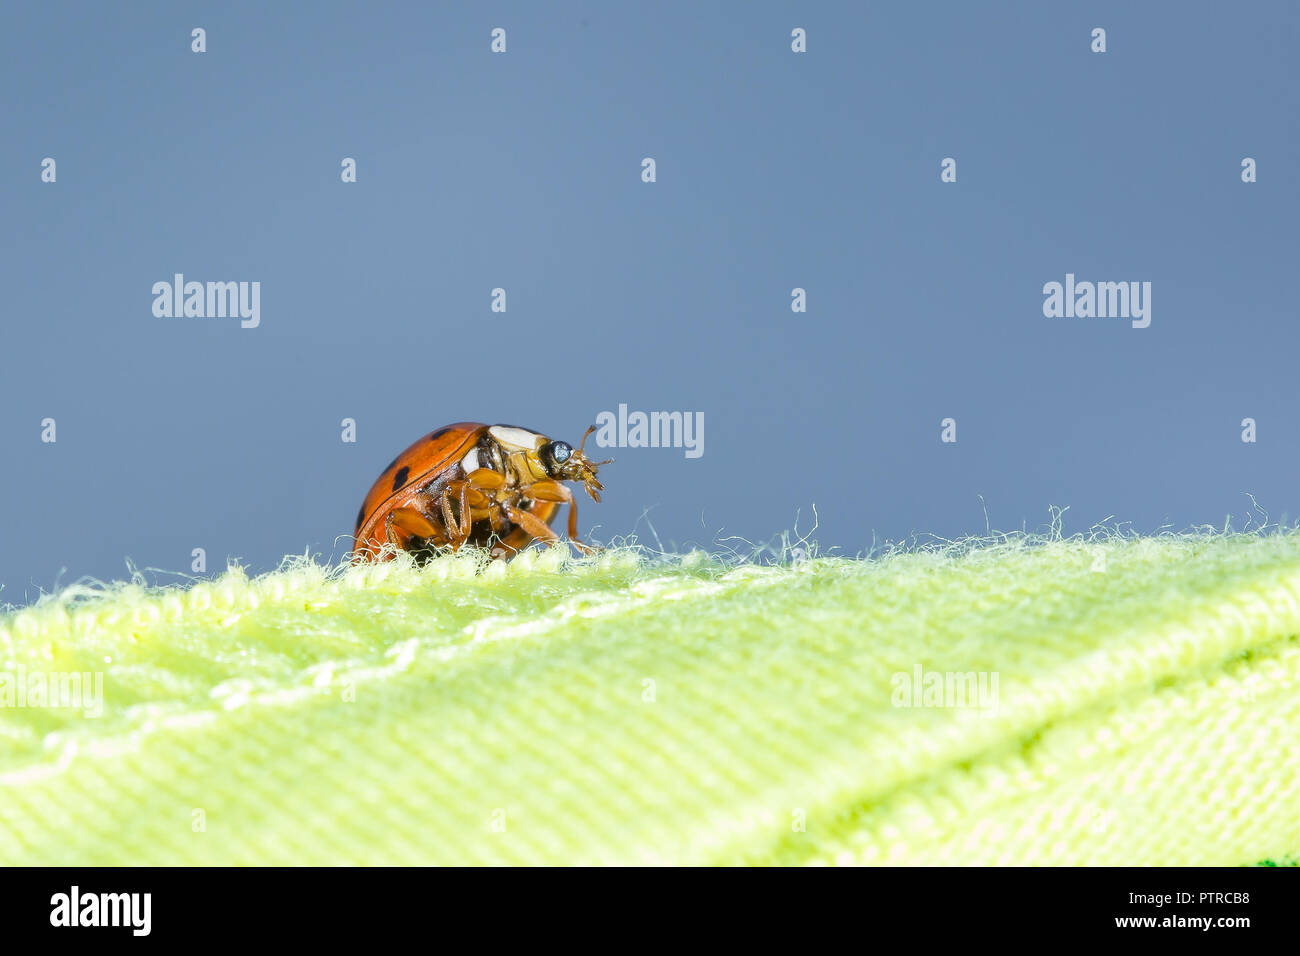 Macro close up of single ladybird (viewed from underneath), outdoors in garden, crawling on green material, against blue sky background. - Stock Image